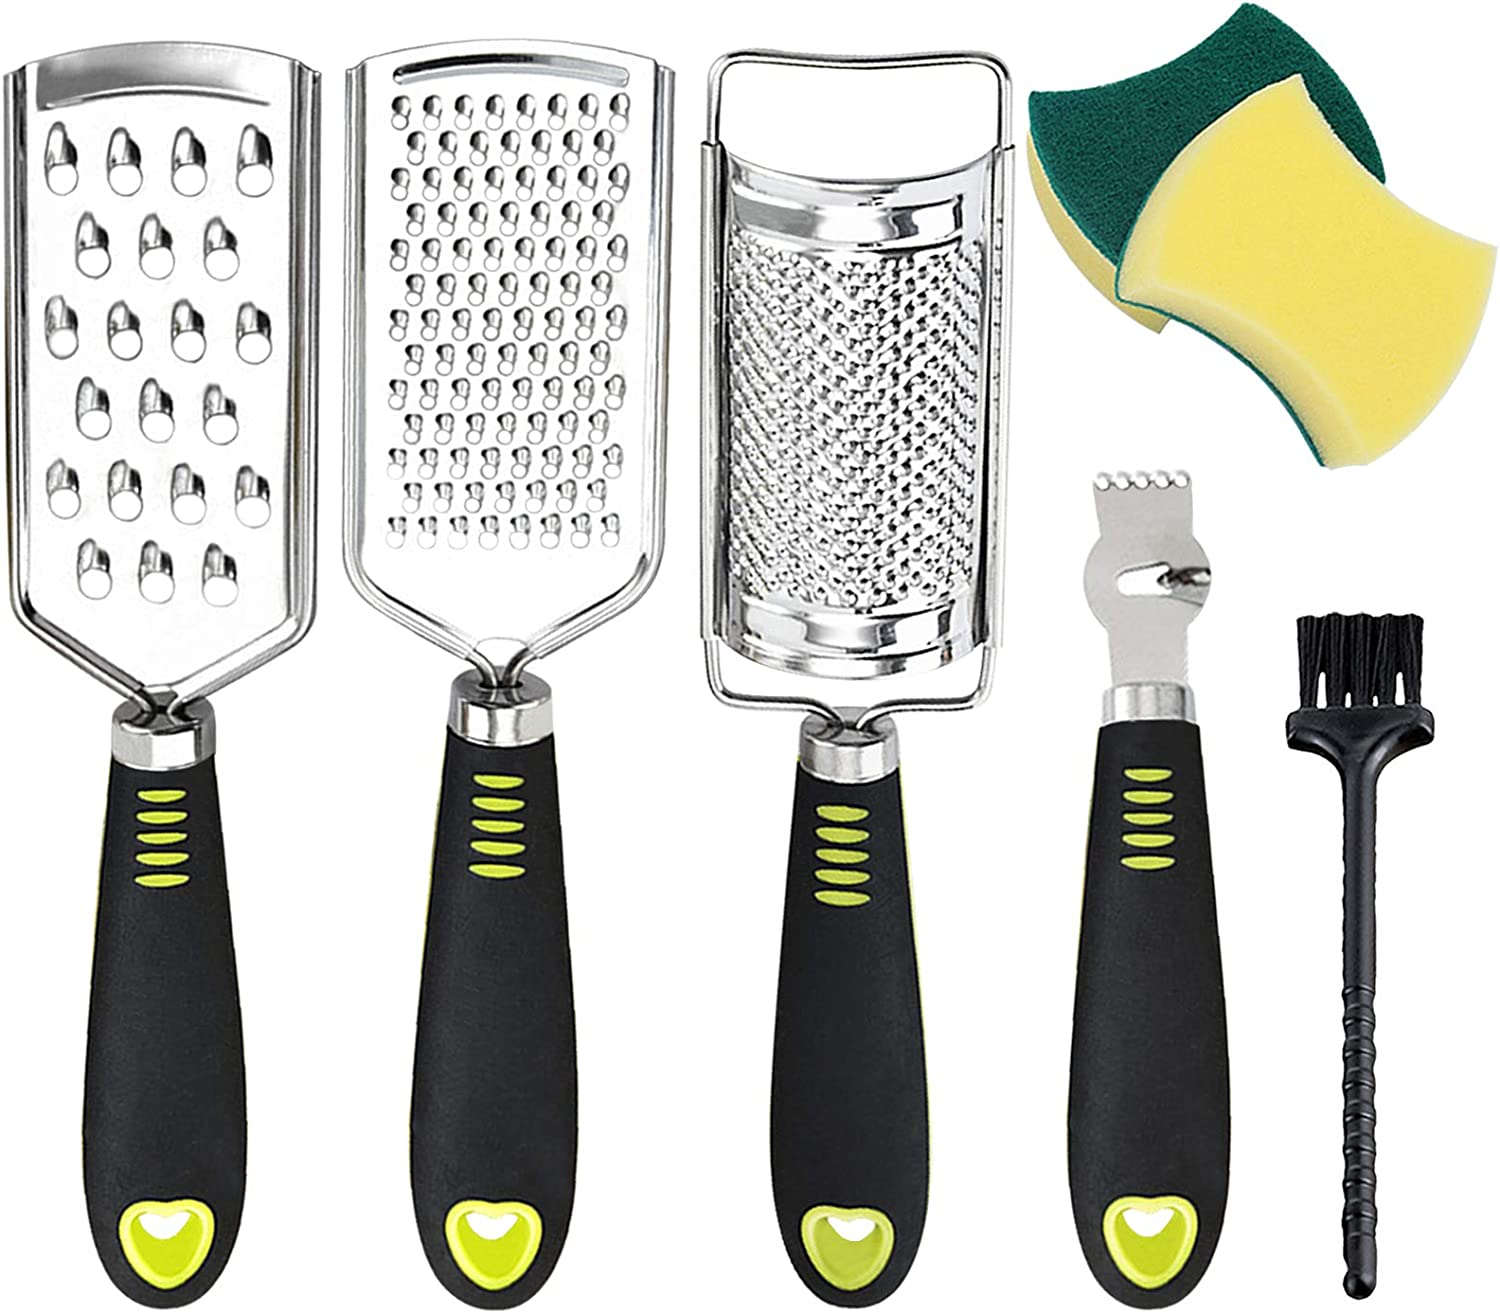 Set of 7 Graters for Cheese Lemon Zester, Stainless Steel Blade and Comfortable Grip Handle Multi-application Food Grater Slicer for Kitchen,Vegetable,Fruit,Chocolate With Cleaning Brush Sponge Brush